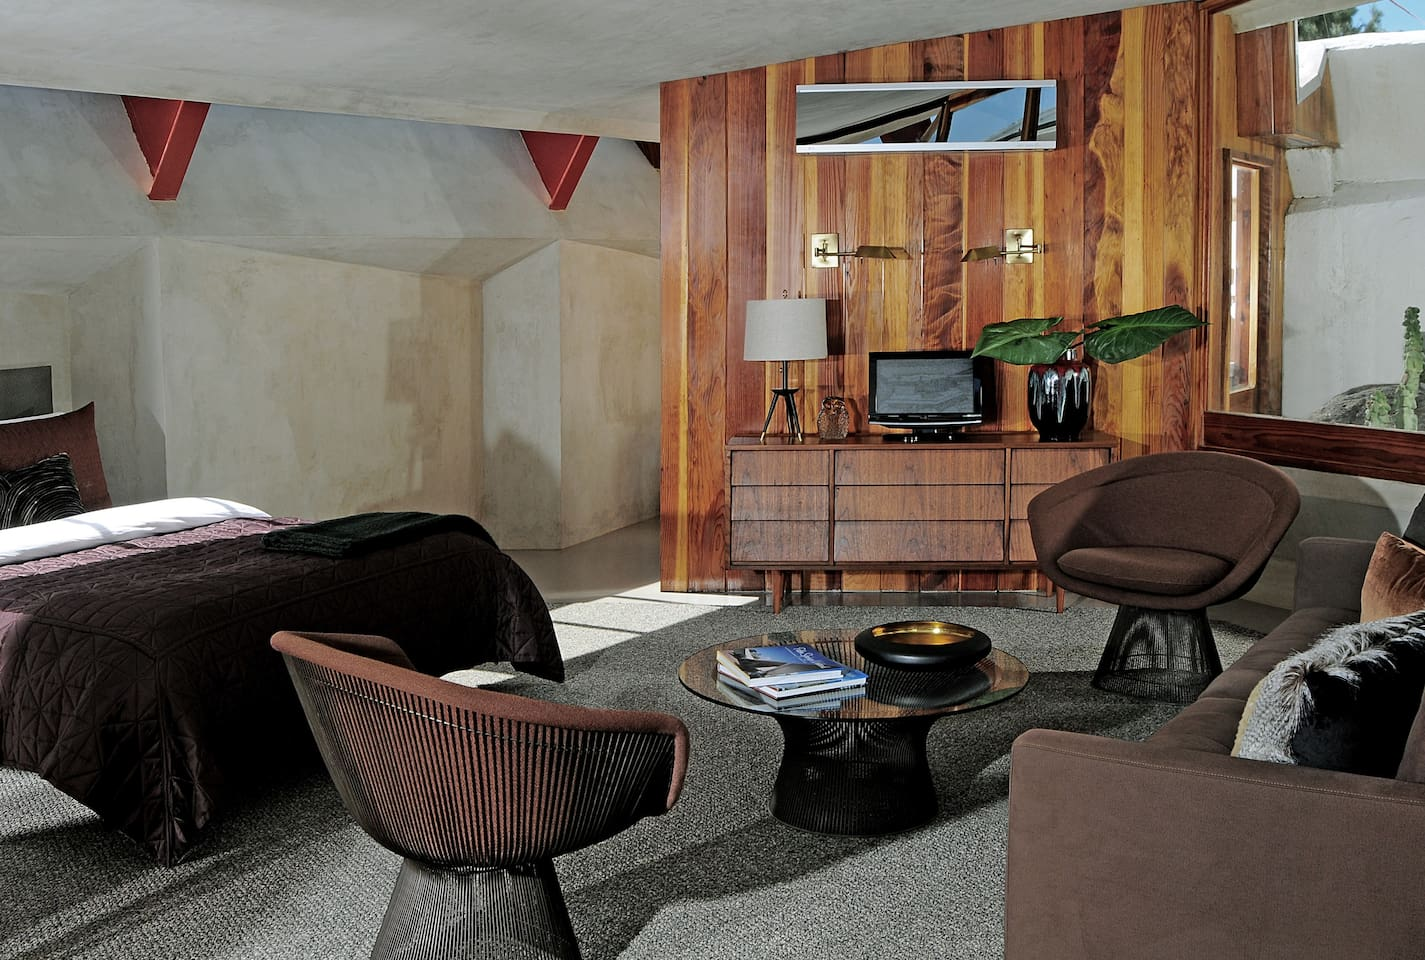 A redwood wall separates the living areas from the kitchenette.